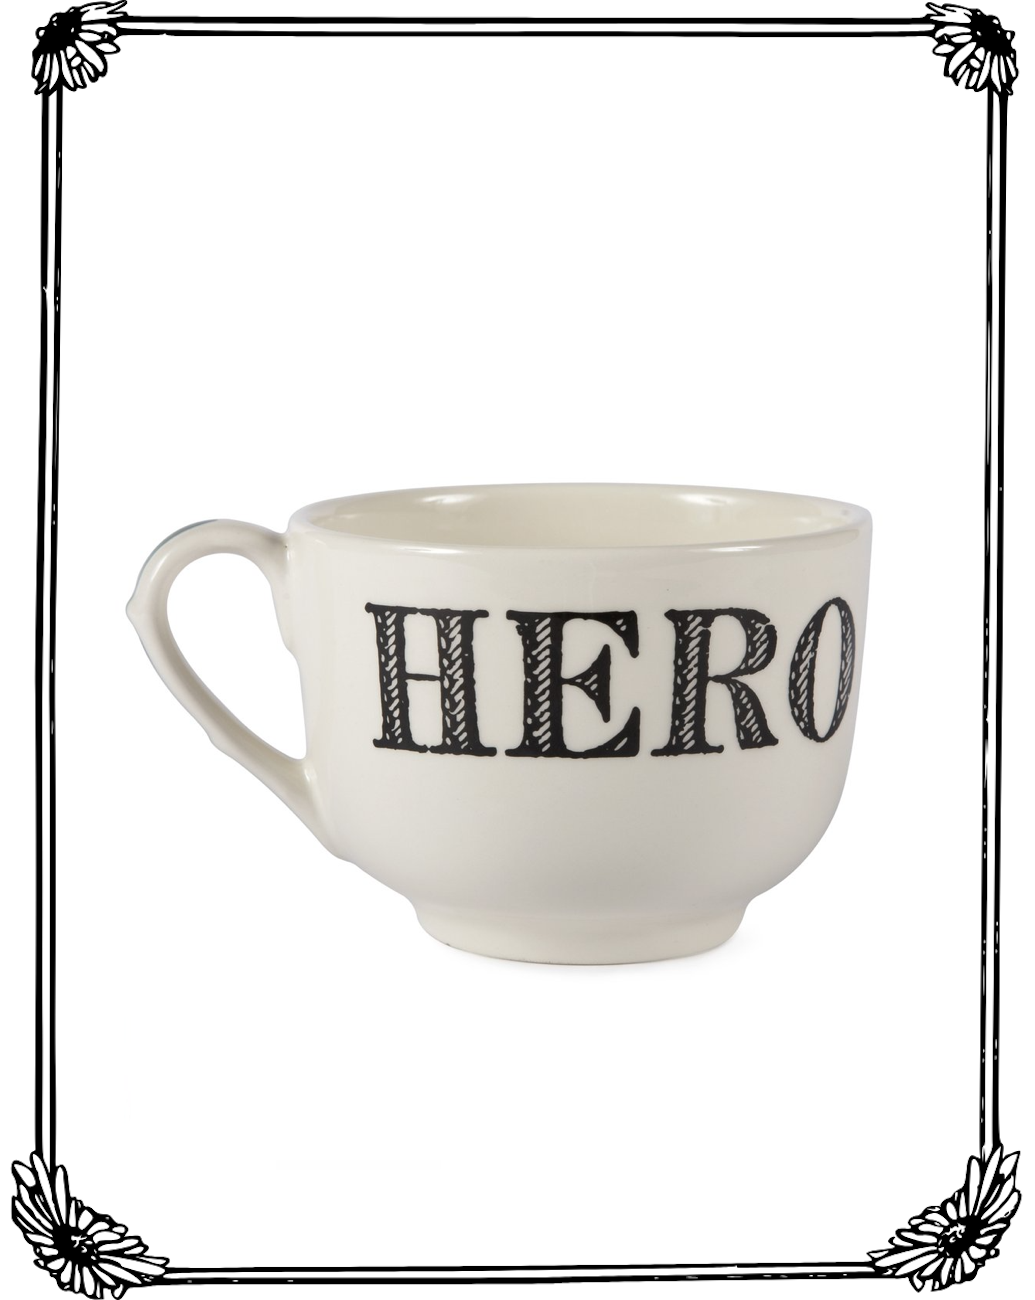 sir-madam-hero-grand-cup.png